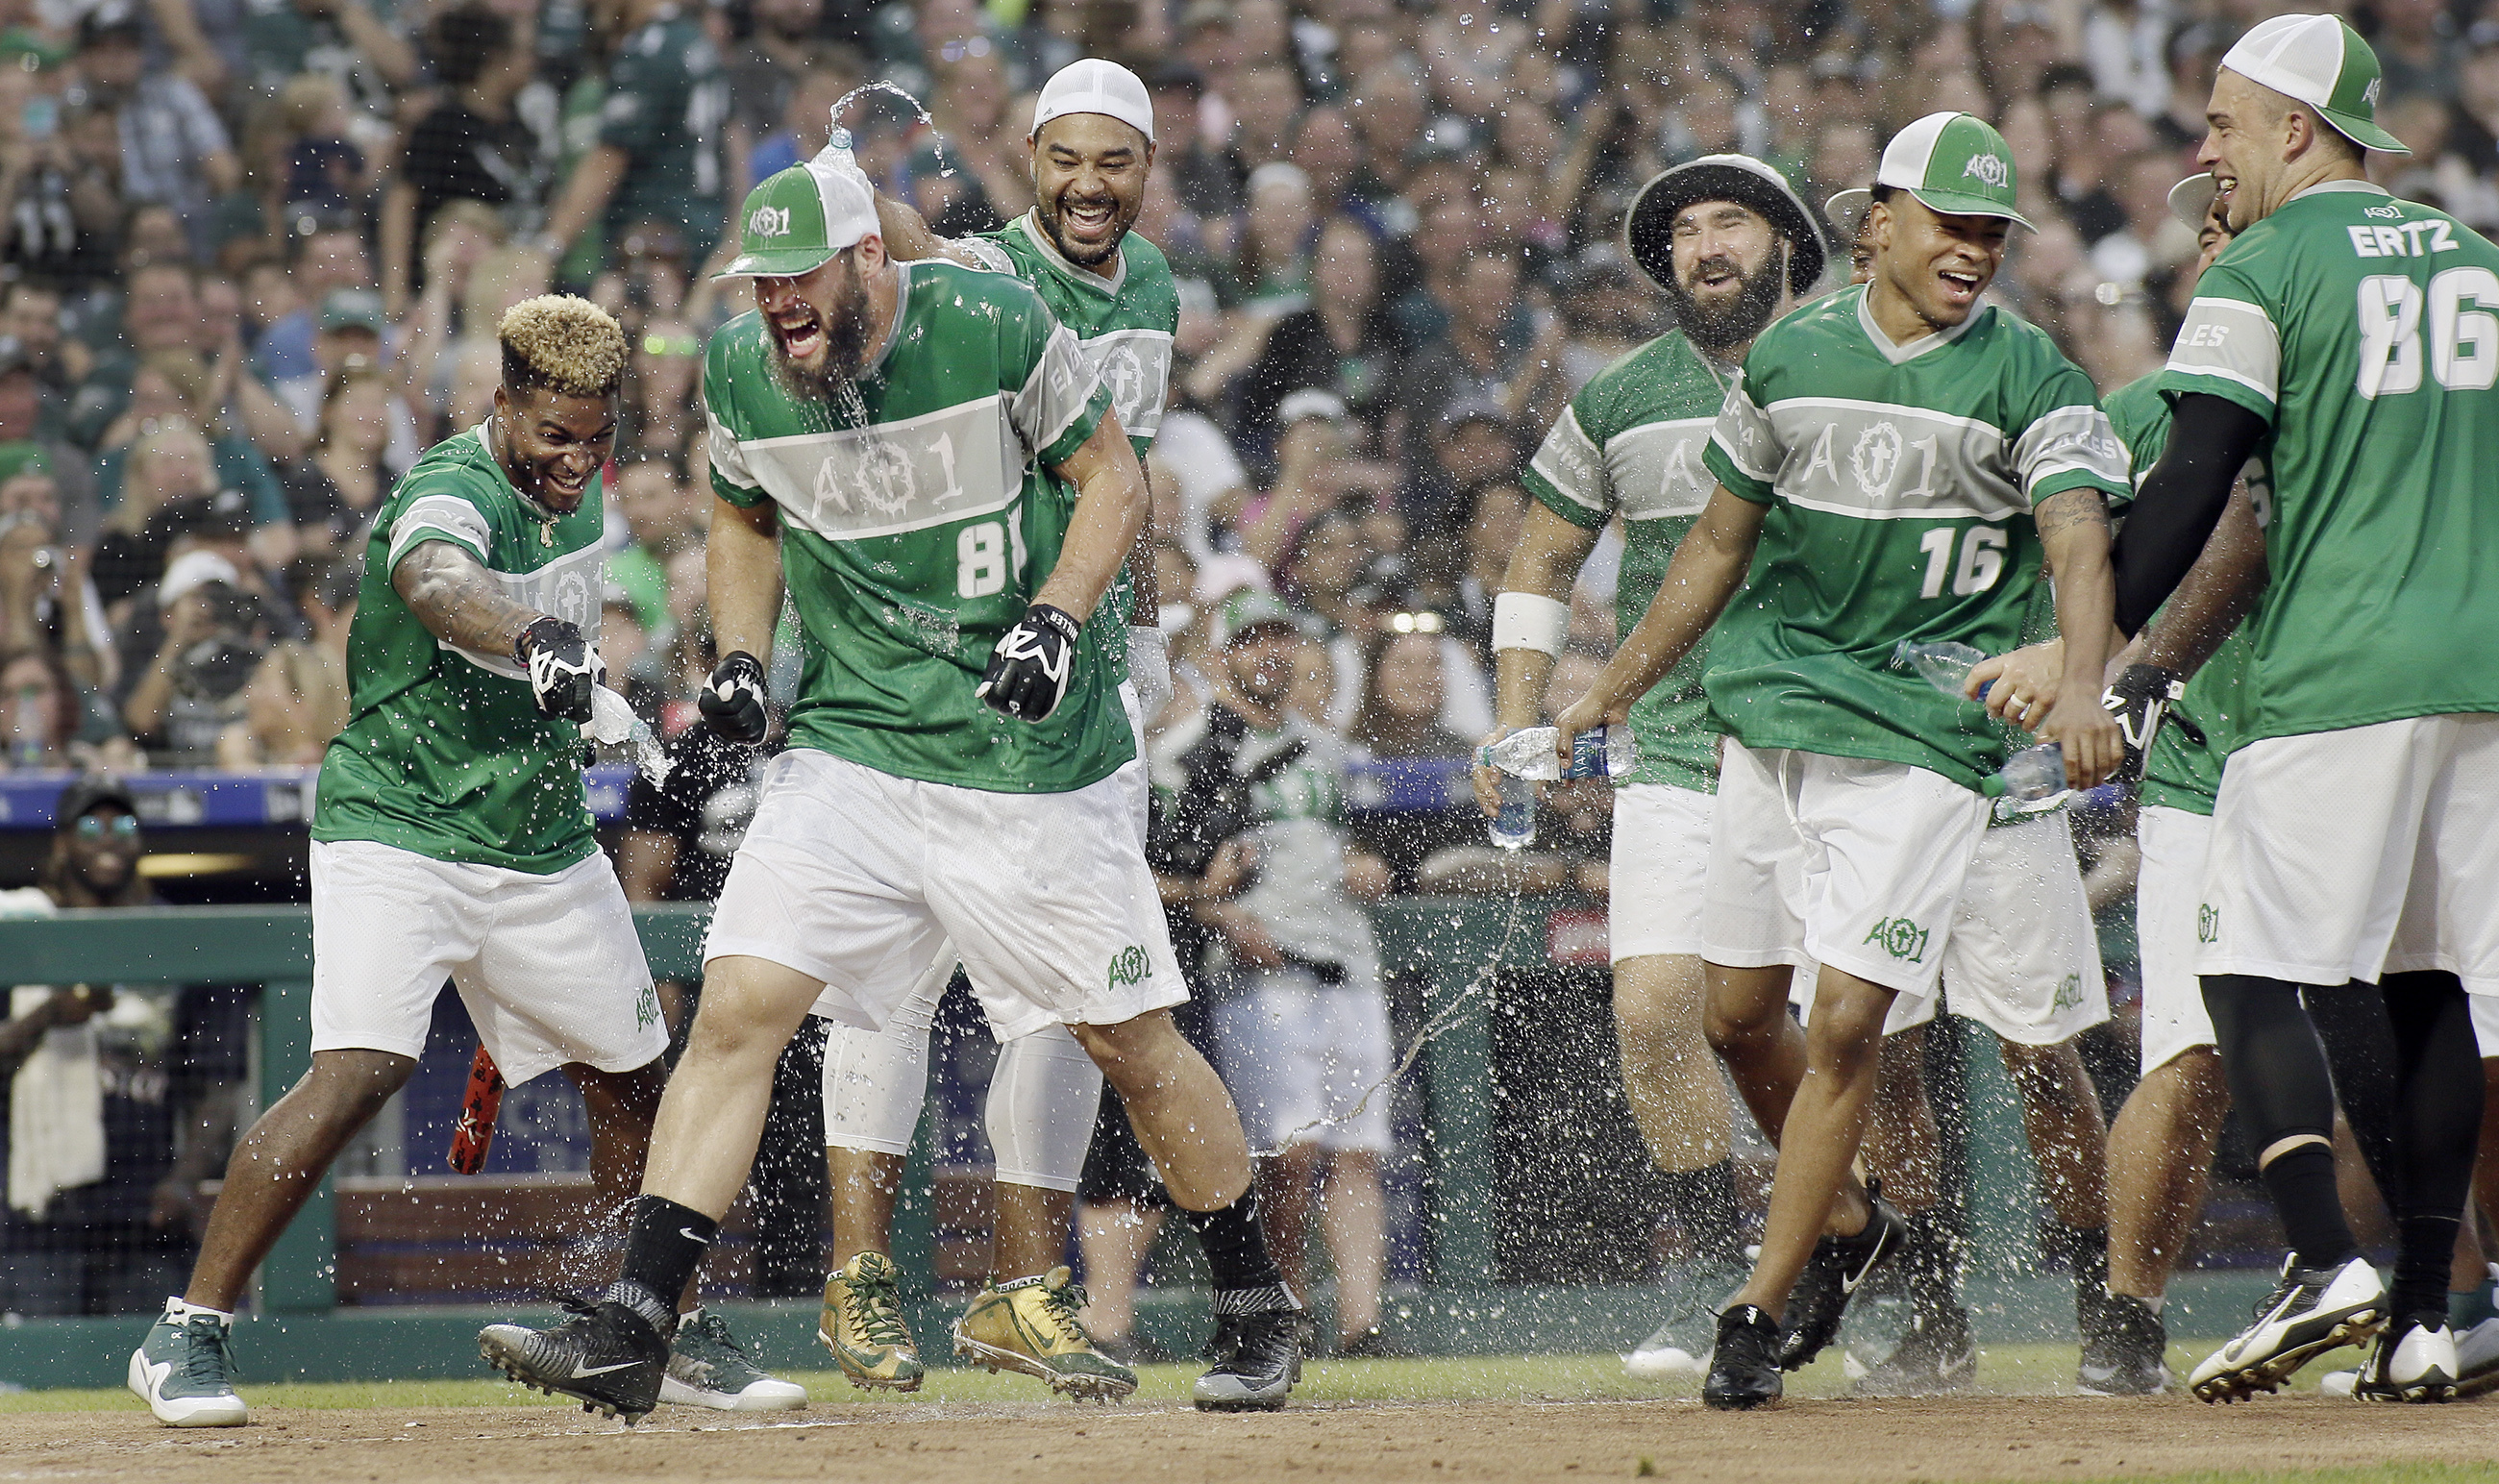 Eagles rookie tight end Dallas Goedert gets soaked by teammates after he hit a home run during Carson Wentz´s charity softball game at Citizens Bank Park.